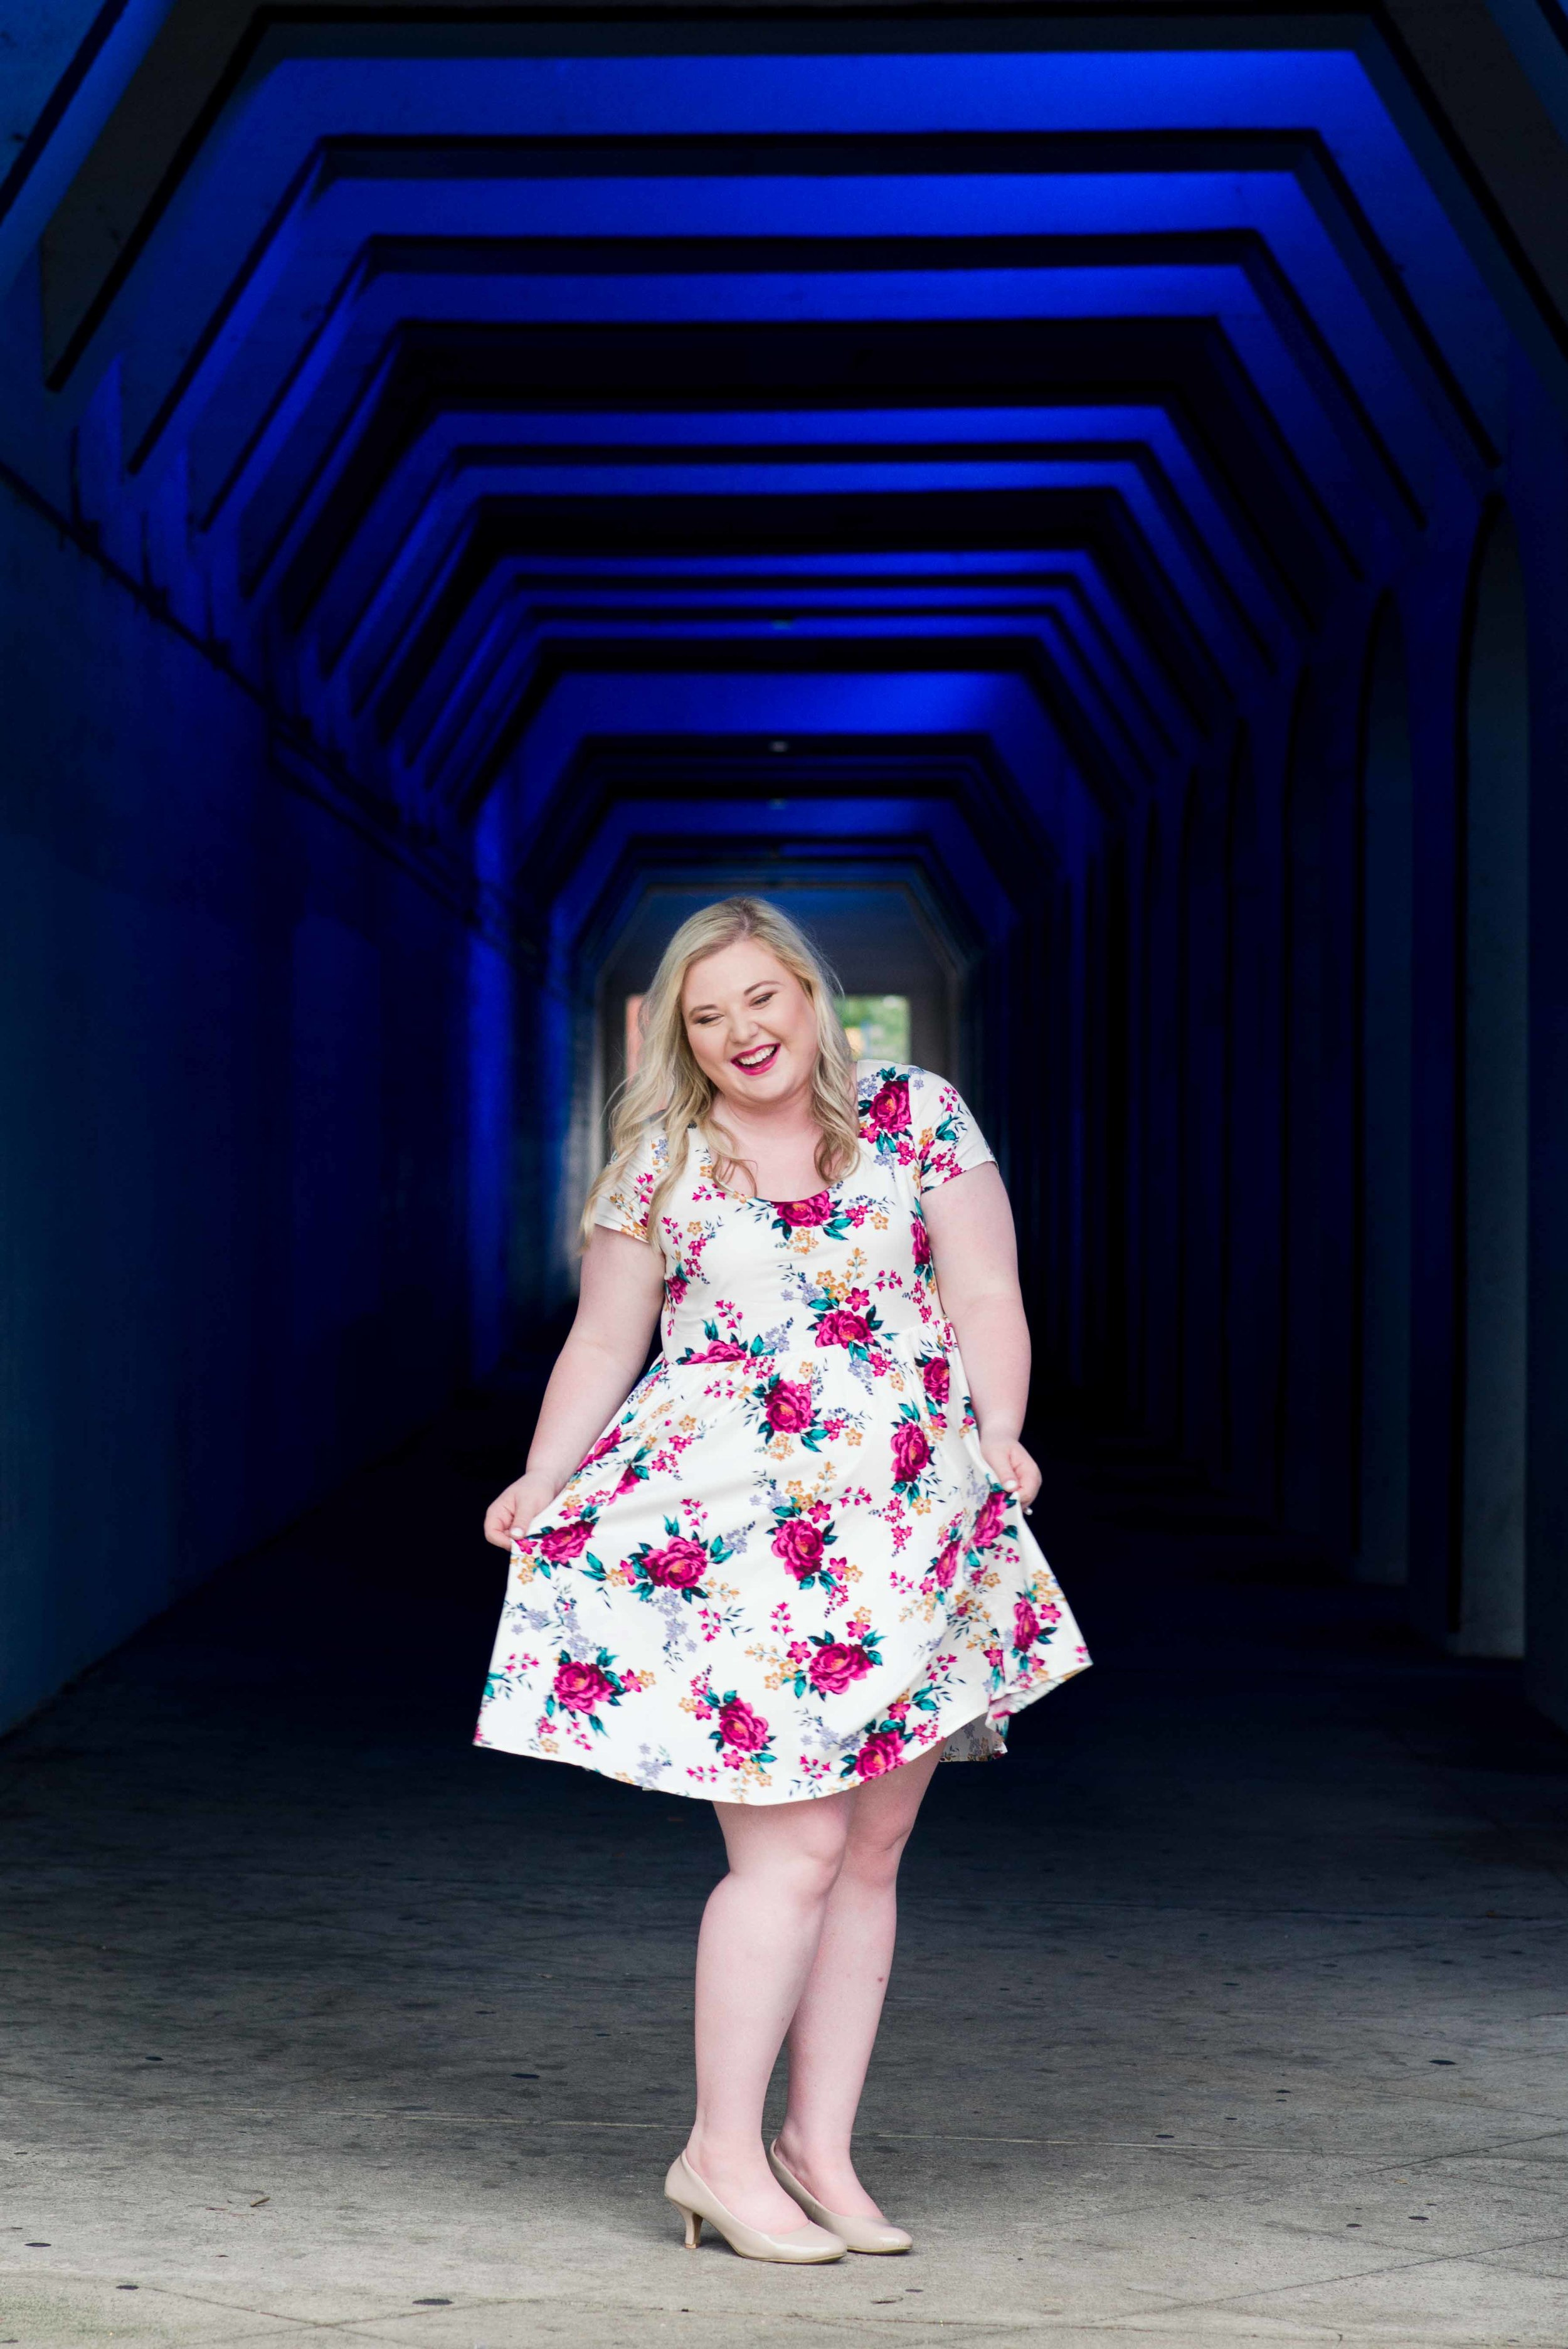 Deborah Michelle Photography Magic City Photographer Birmingham Alabama Senior Portraits Color Tunnel